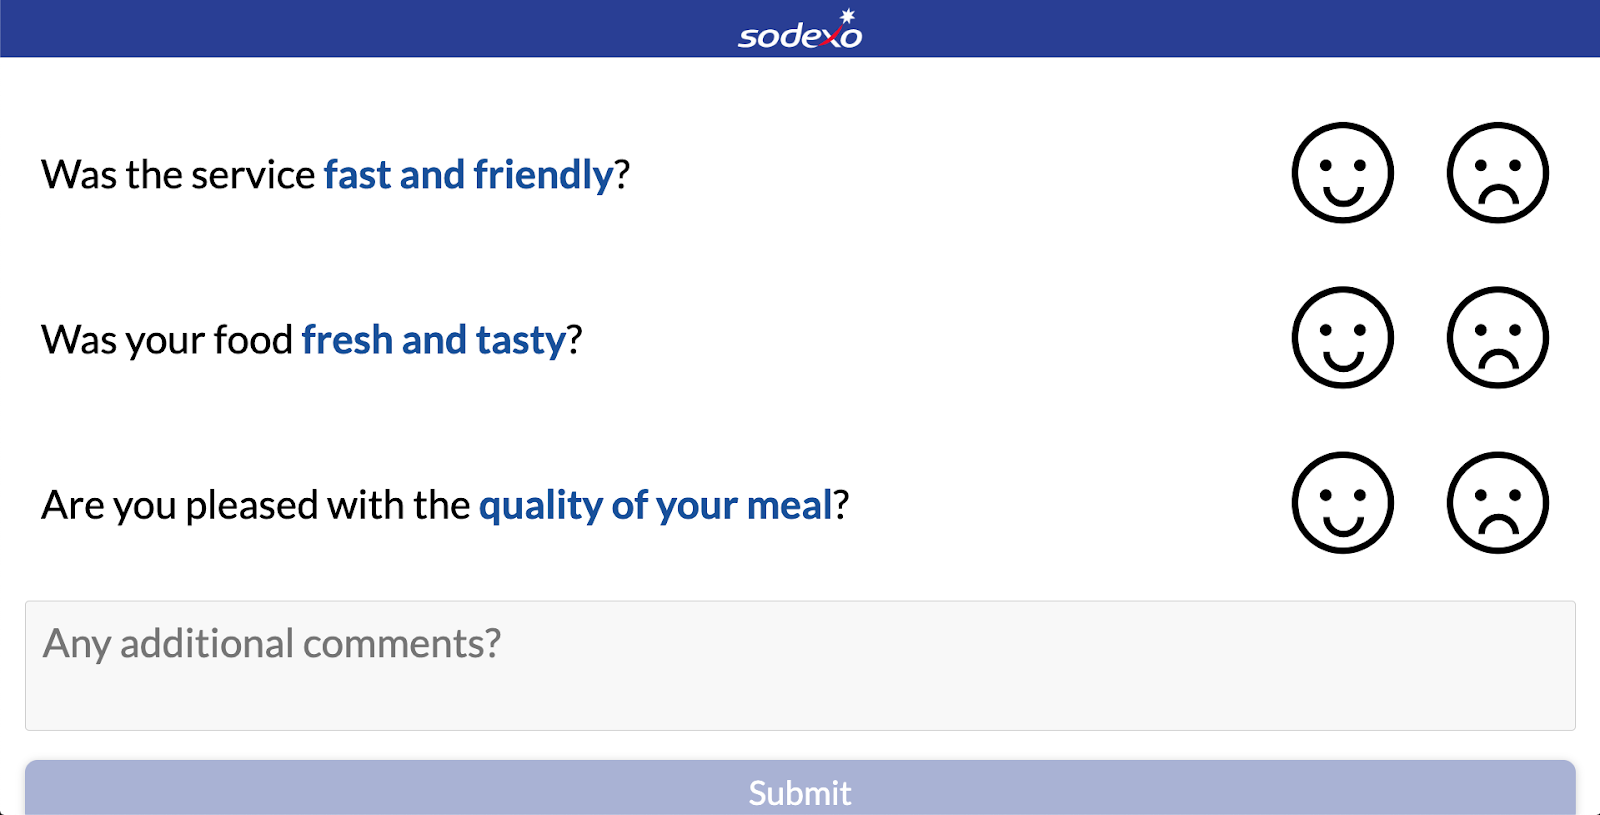 Sodexo captures customer feedback through insightful surveys